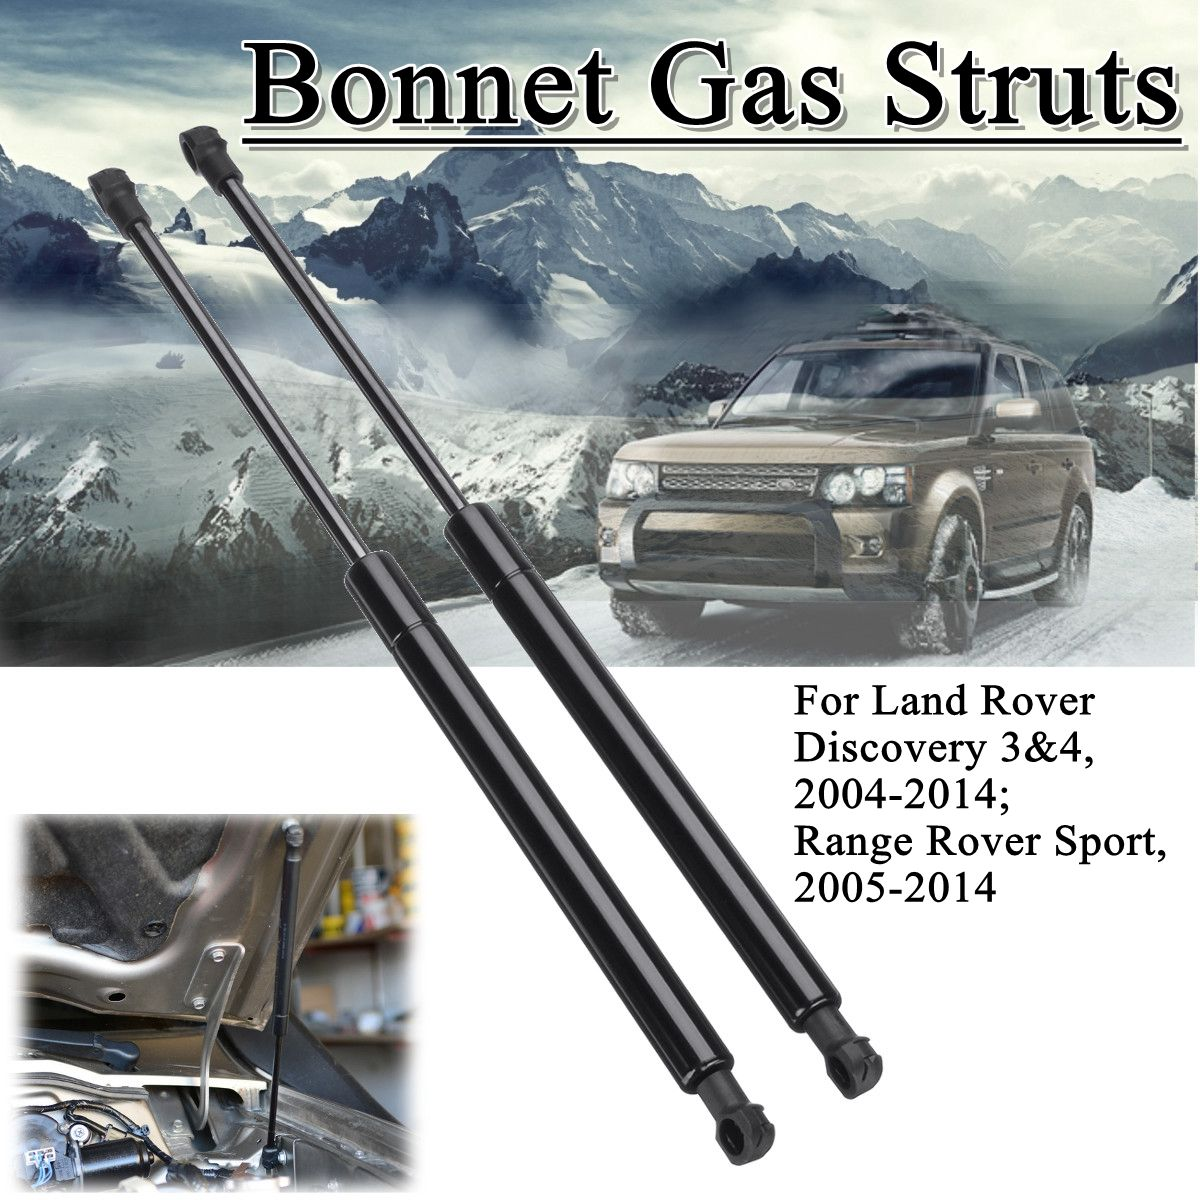 2pcs Front Bonnet Hood Support Gas Struts For Land Rover Discovery Range Rover Sport 2004-2014 LR009106